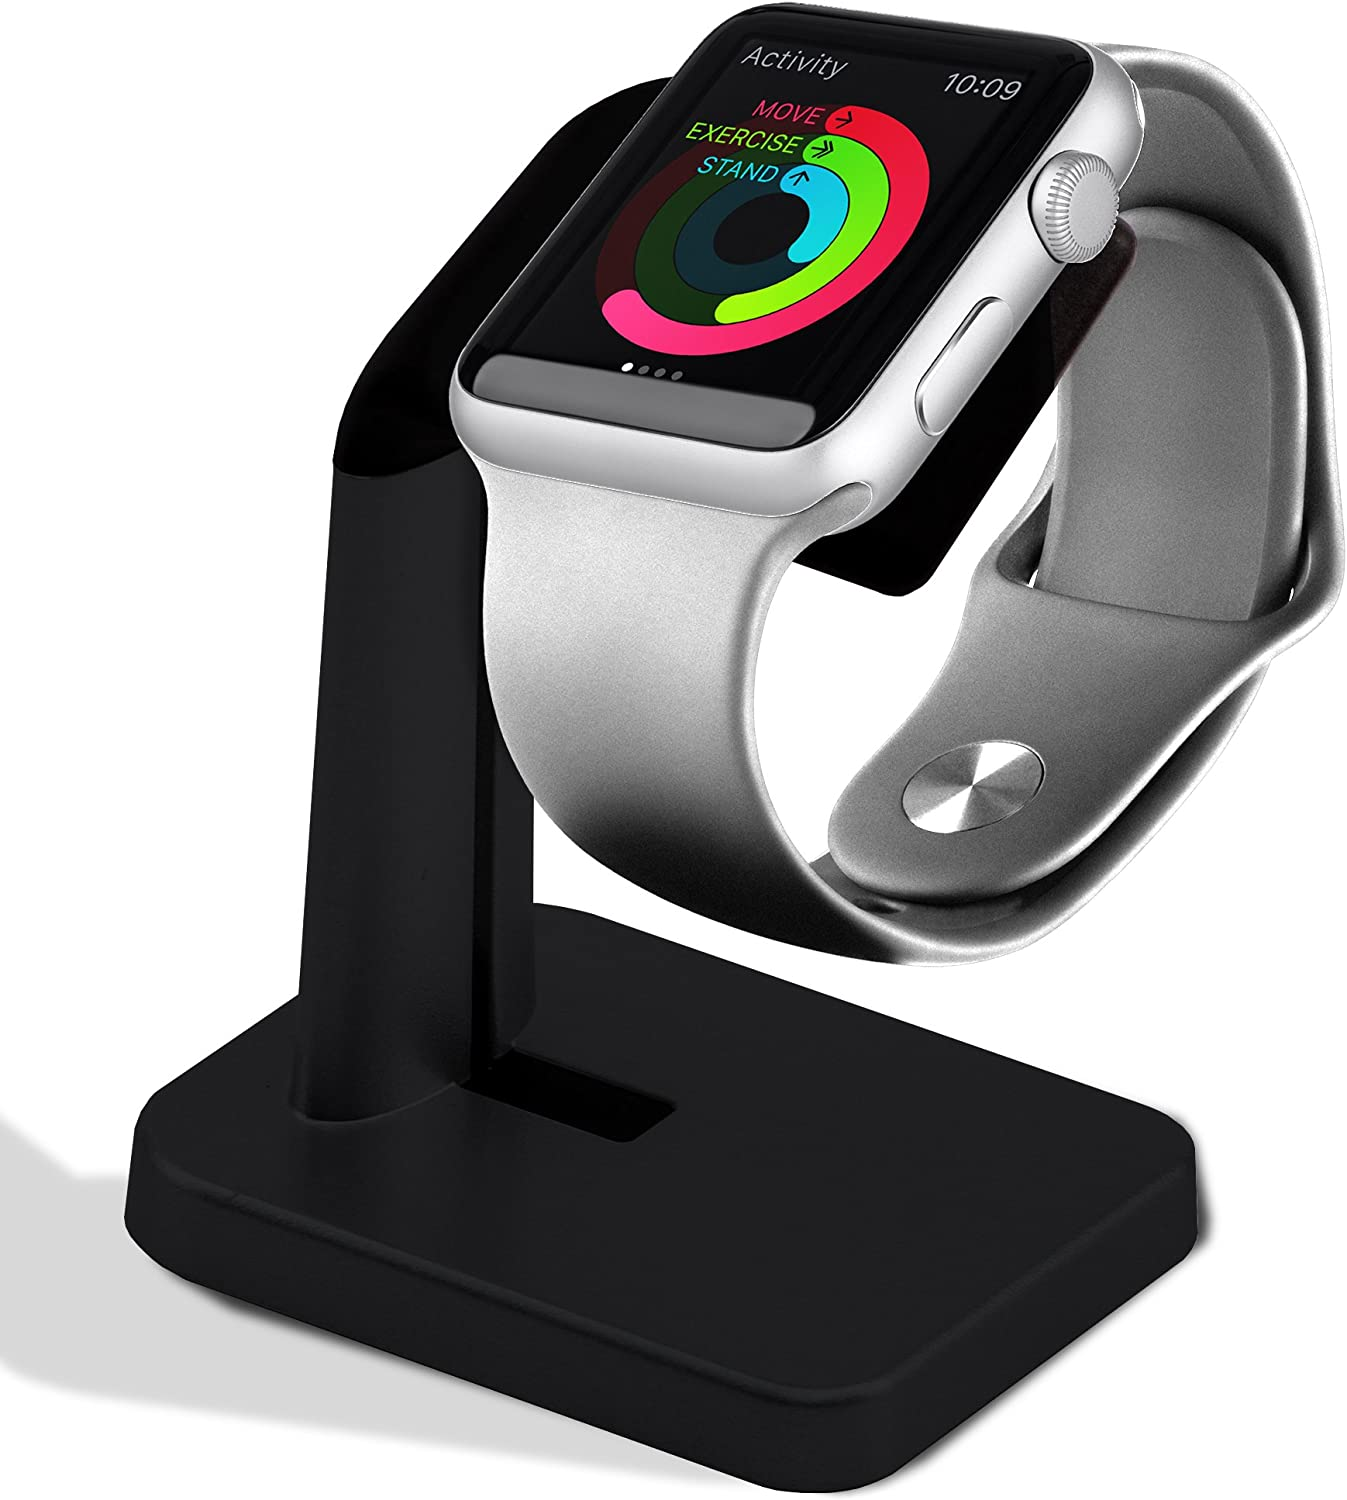 Melkiox Apple Watch Stand- Compatible with iWatch Nightstand Mode Charging, Smartwatch Holder for Series 4 / Series 3 / Series 2 / Series 1 44mm, 42mm, 40mm, 38mm (Black)